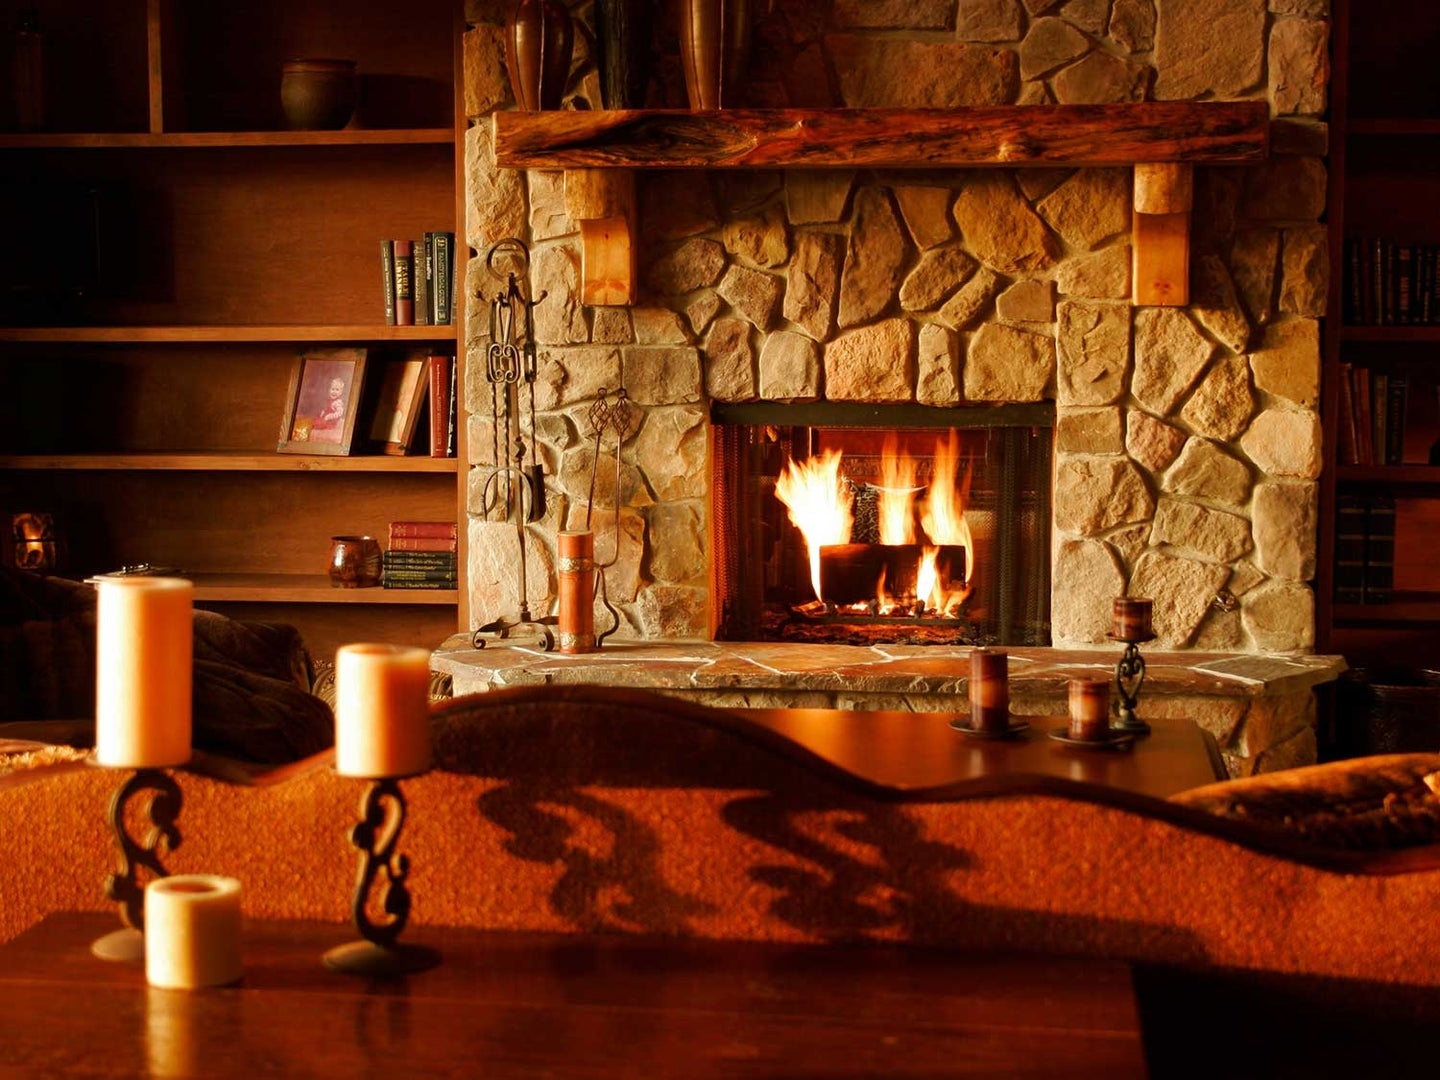 Fireplace with accessories for warm home.